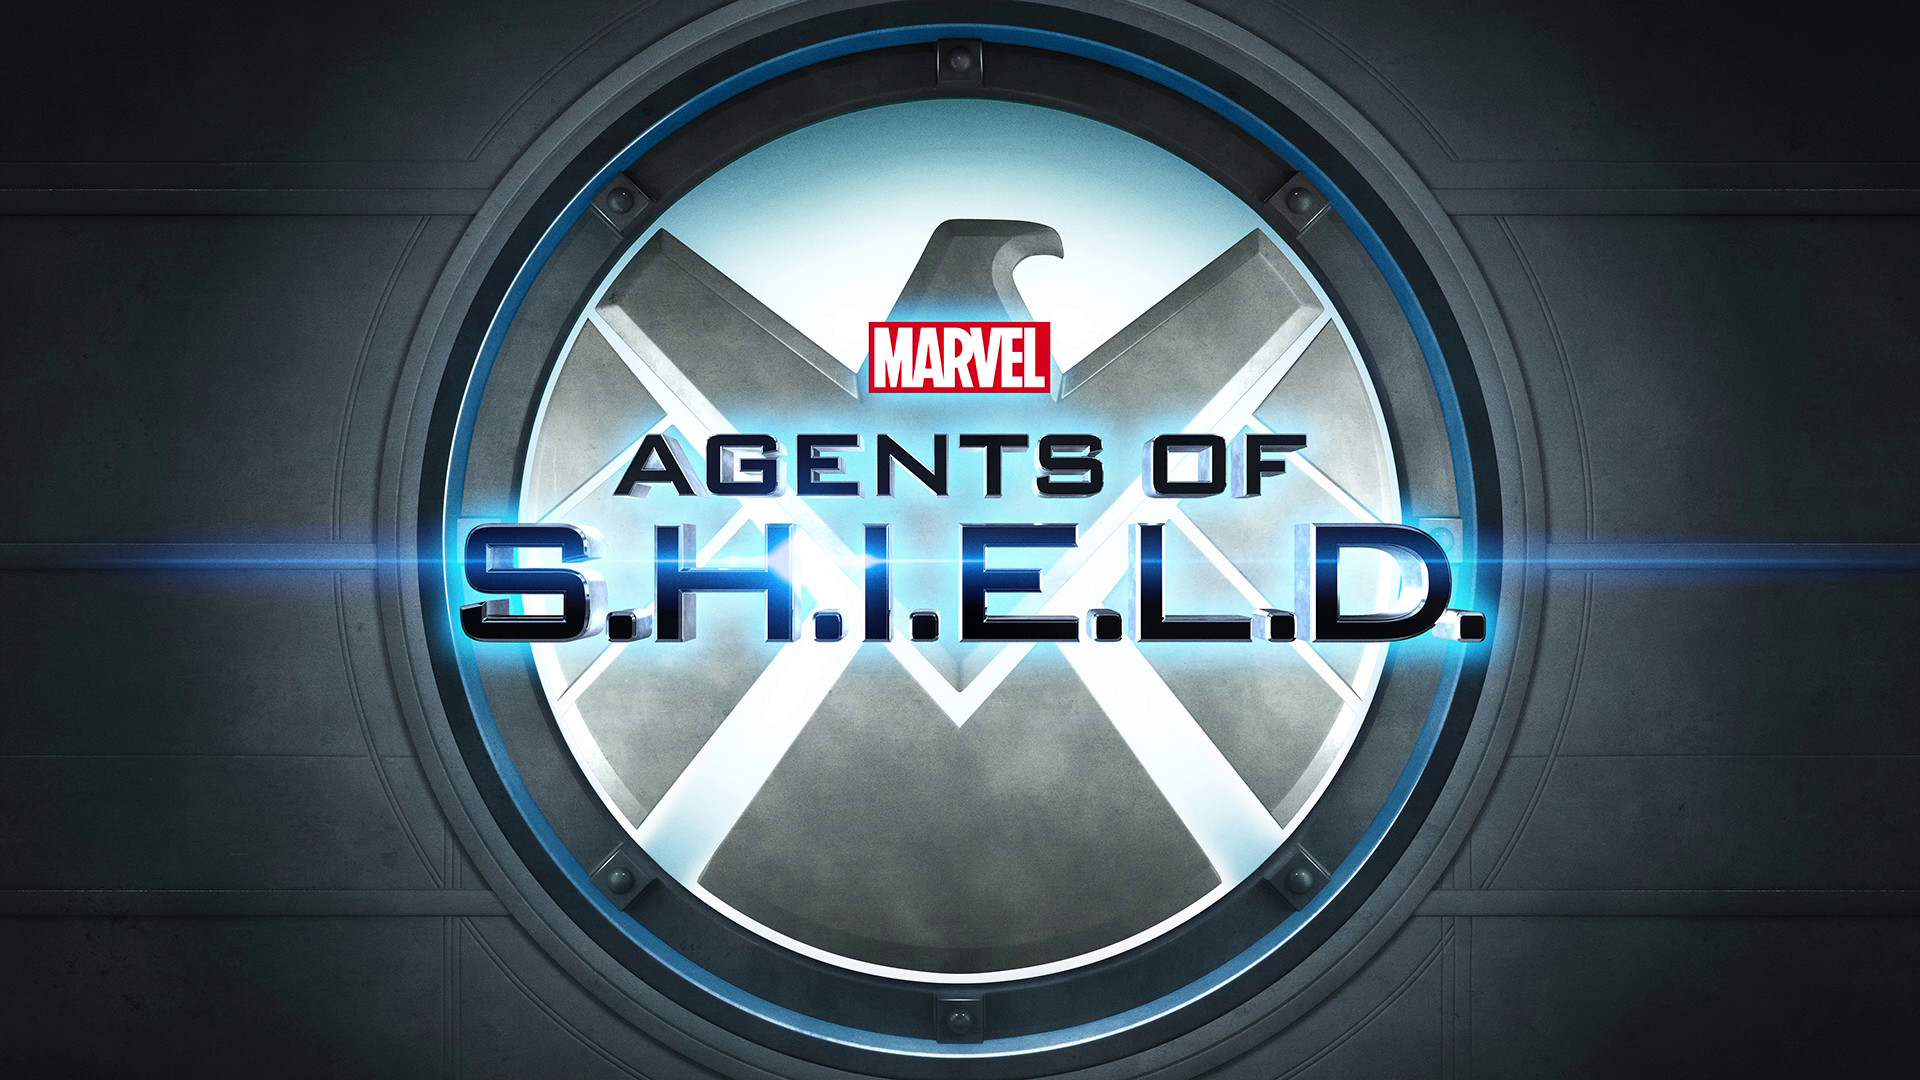 160 Agents Of Shield Wallpapers Hd